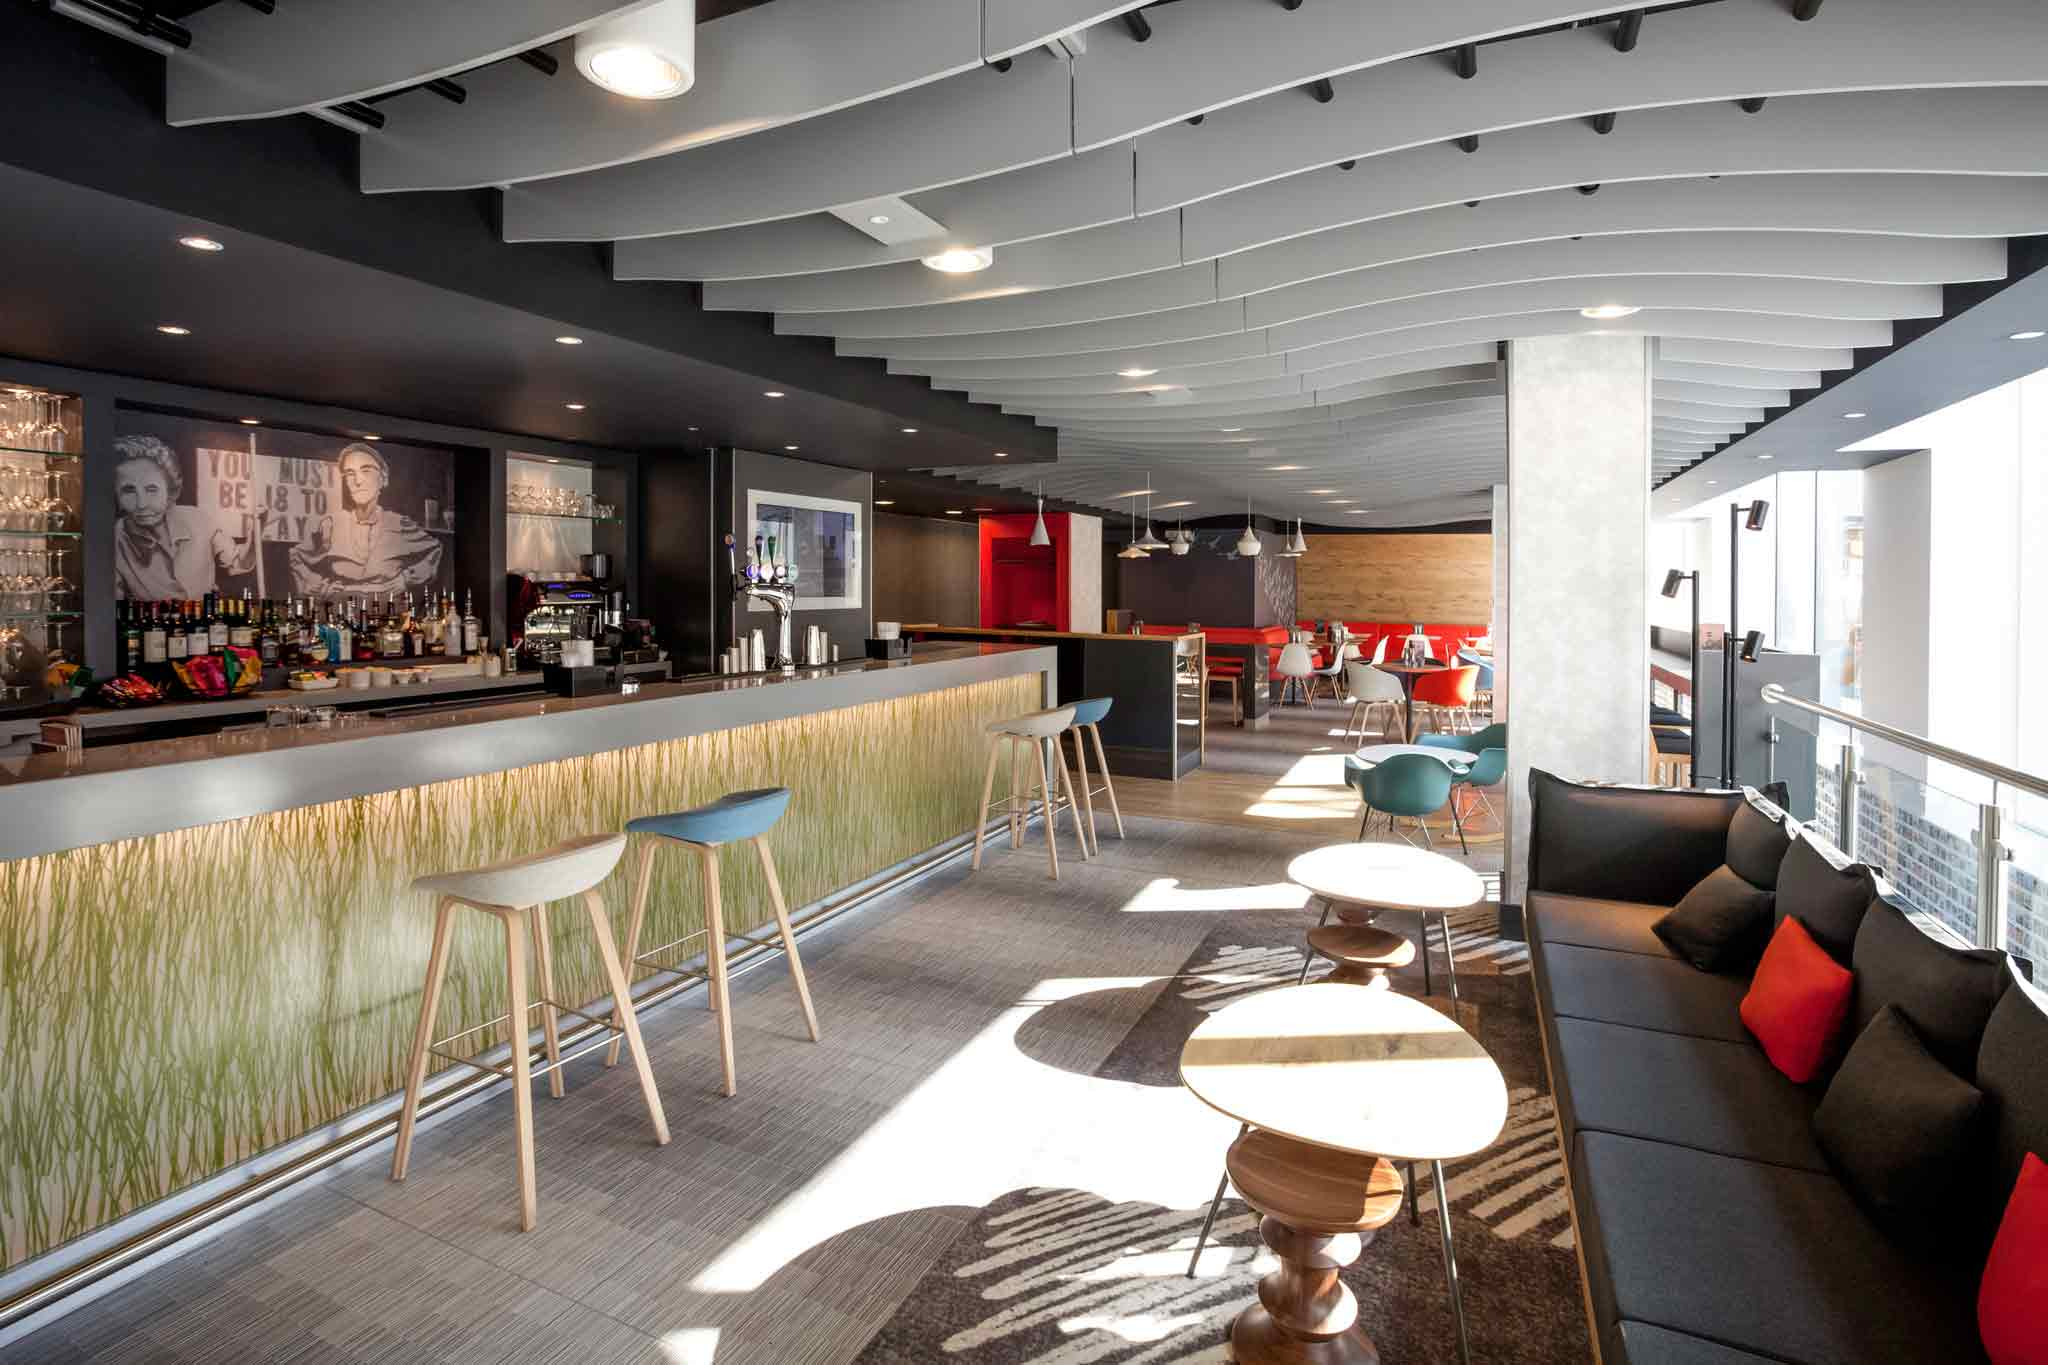 Ibis brighton hotel a stylish addition to the city for Stylish hotel